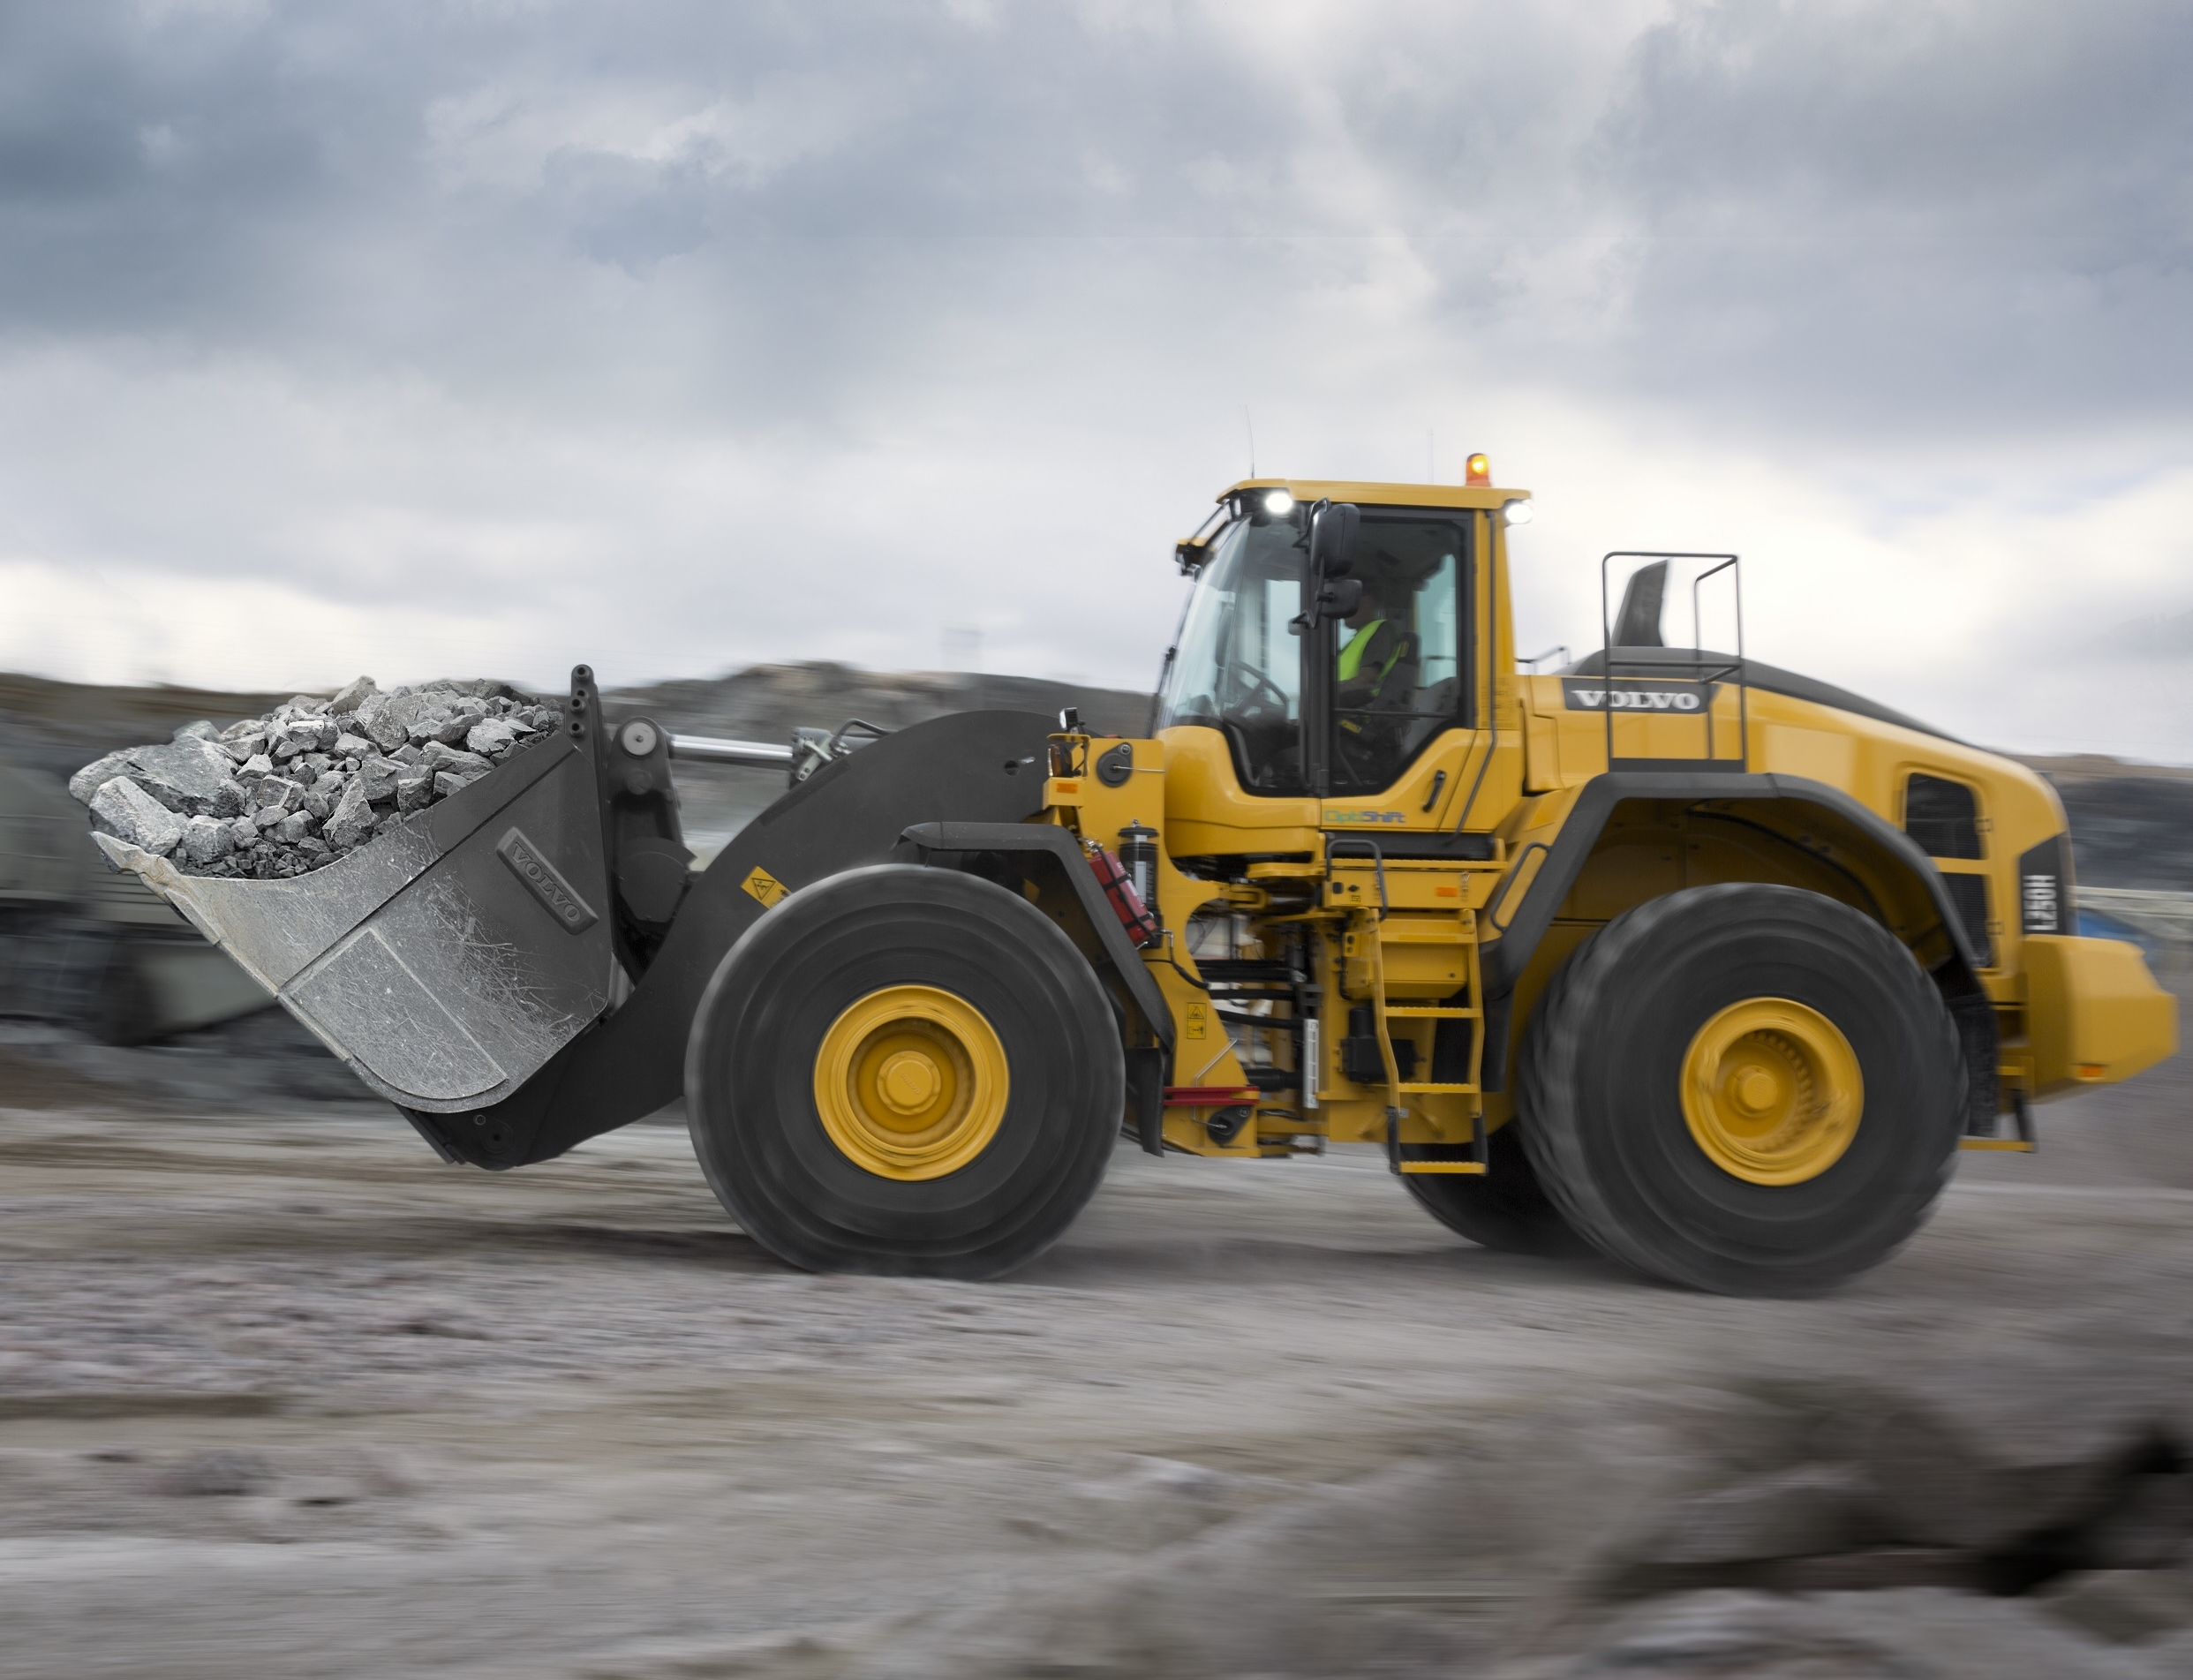 Volvo L250H Wheel Loader Makes Light Of Heavy Jobs - Underground Construction